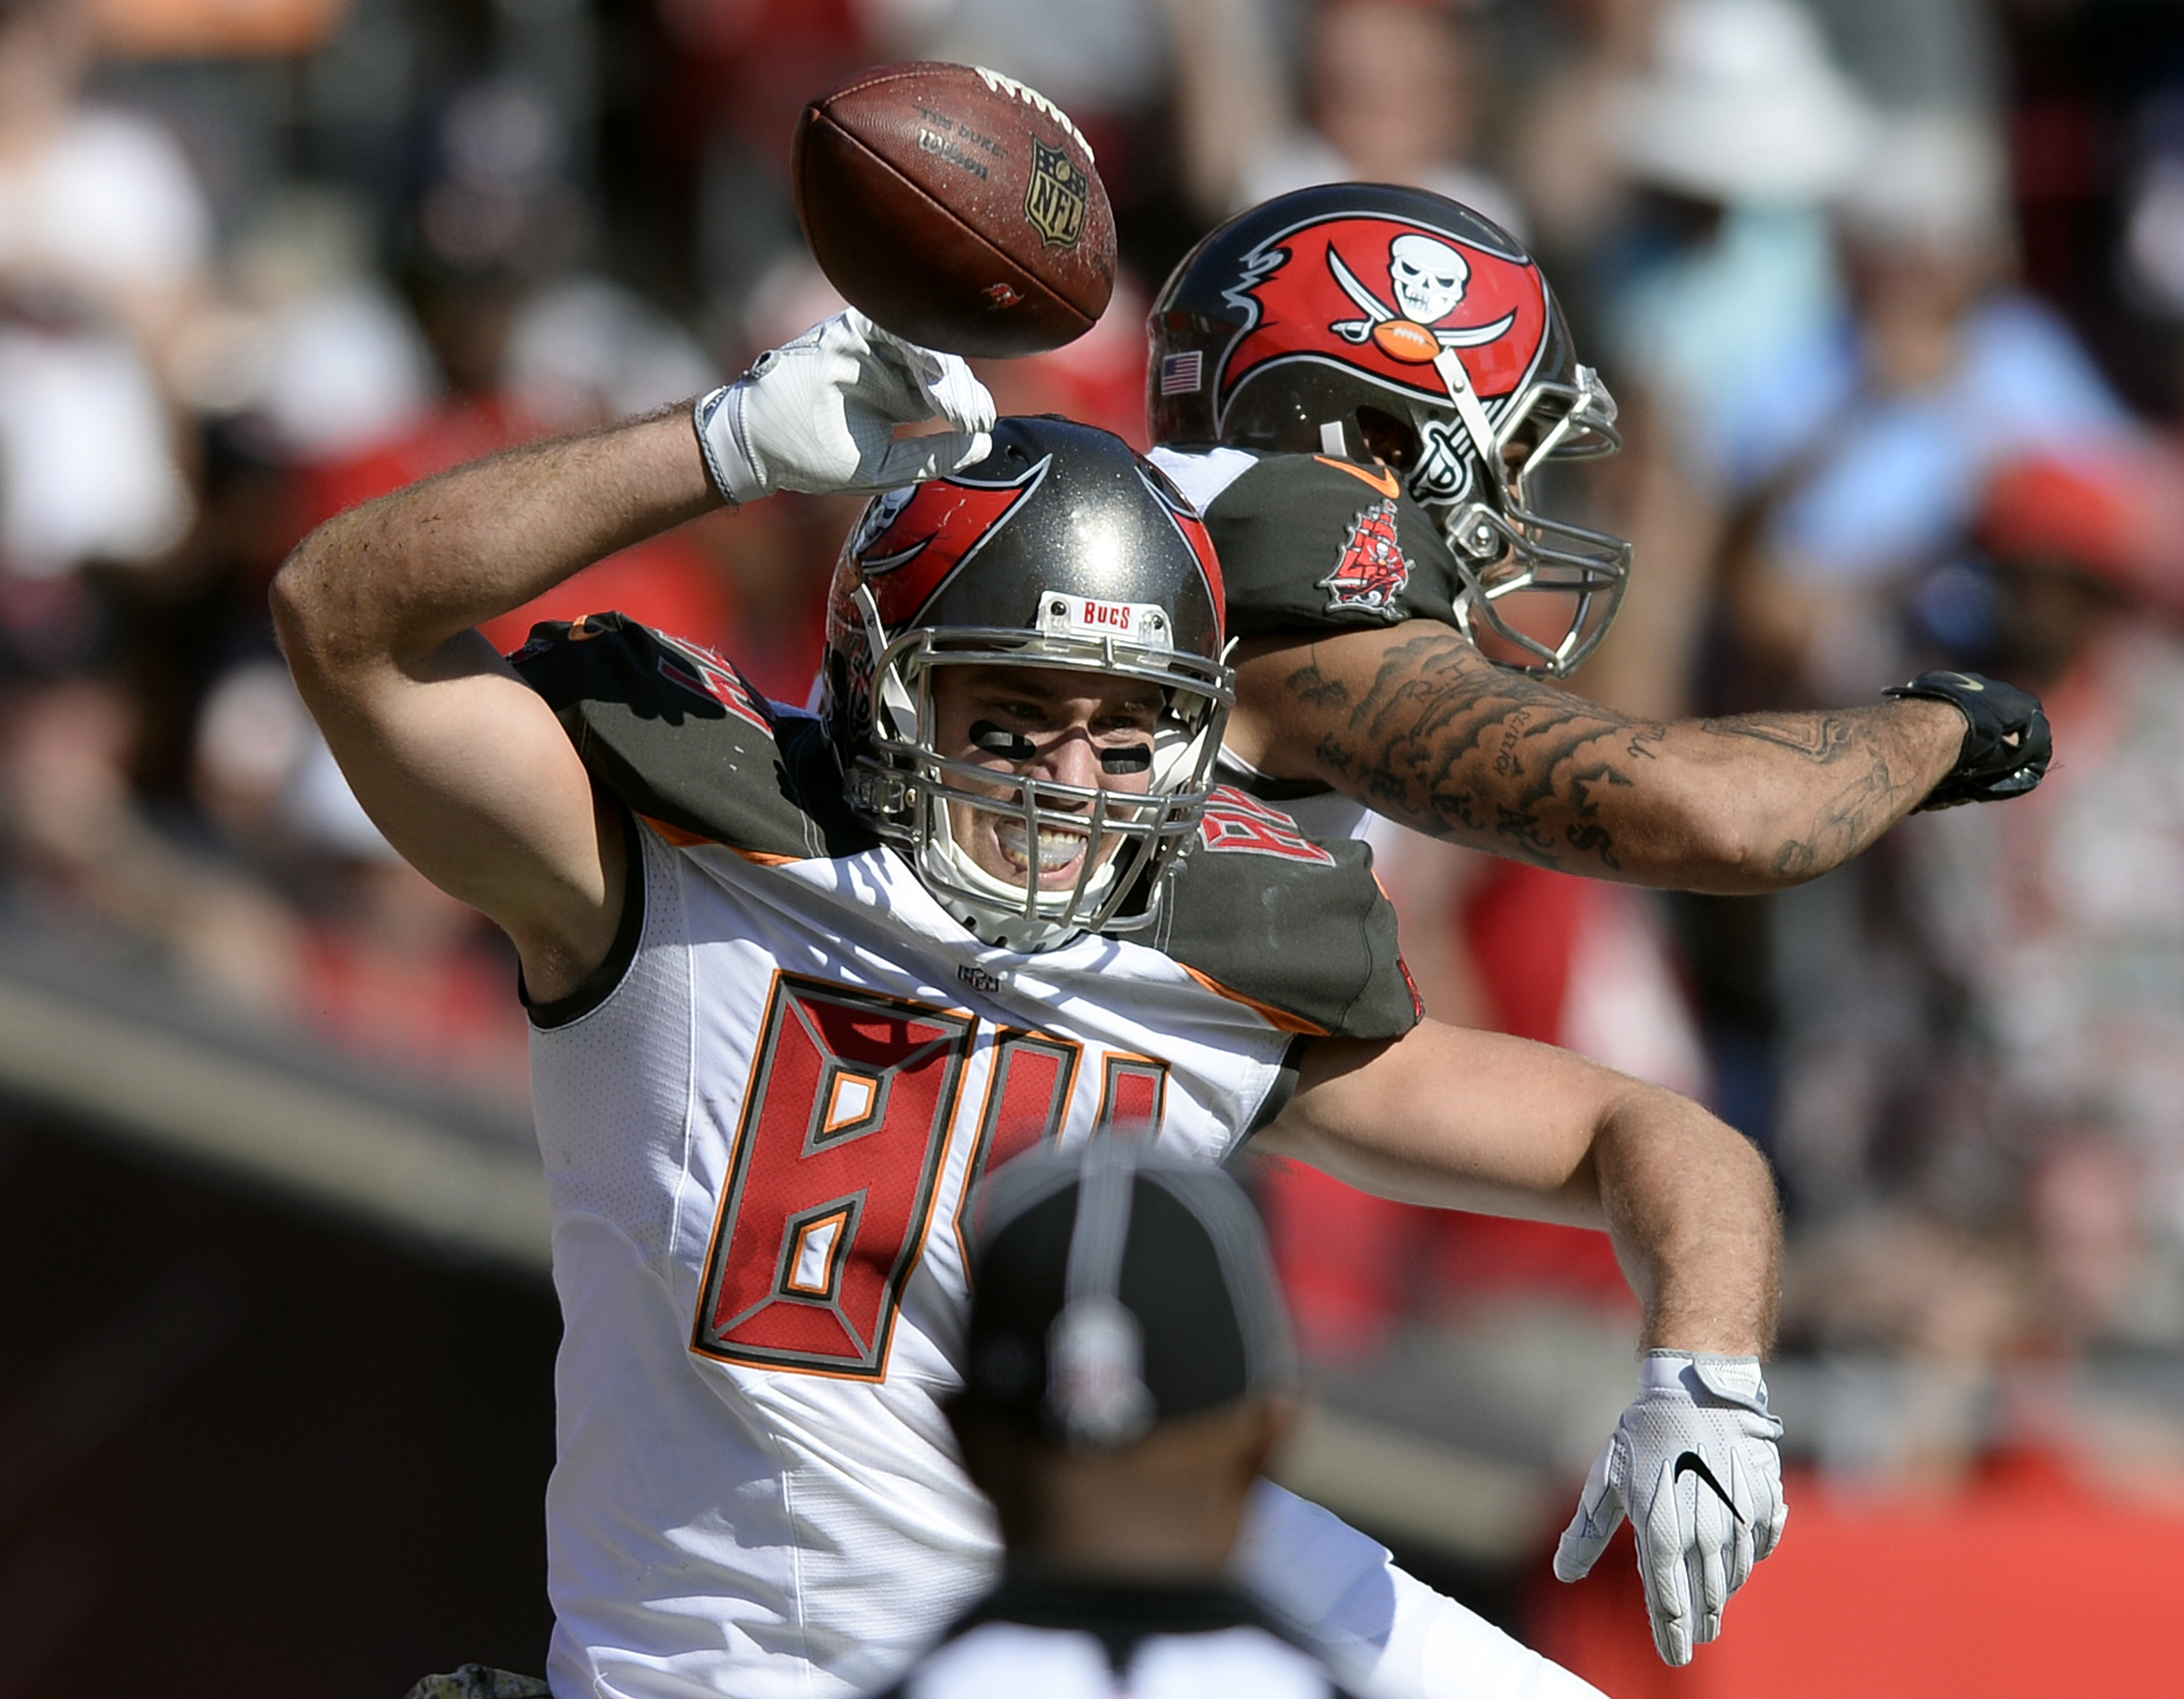 Tampa Bay Buccaneers tight end Cameron Brate (84) celebrates with wide receiver Mike Evans (13) after Brate caught a 10-yard touchdown pass against the Chicago Bears during the first quarter of an NFL football game Sunday, Nov. 13, 2016, in Tampa, Fla. (A